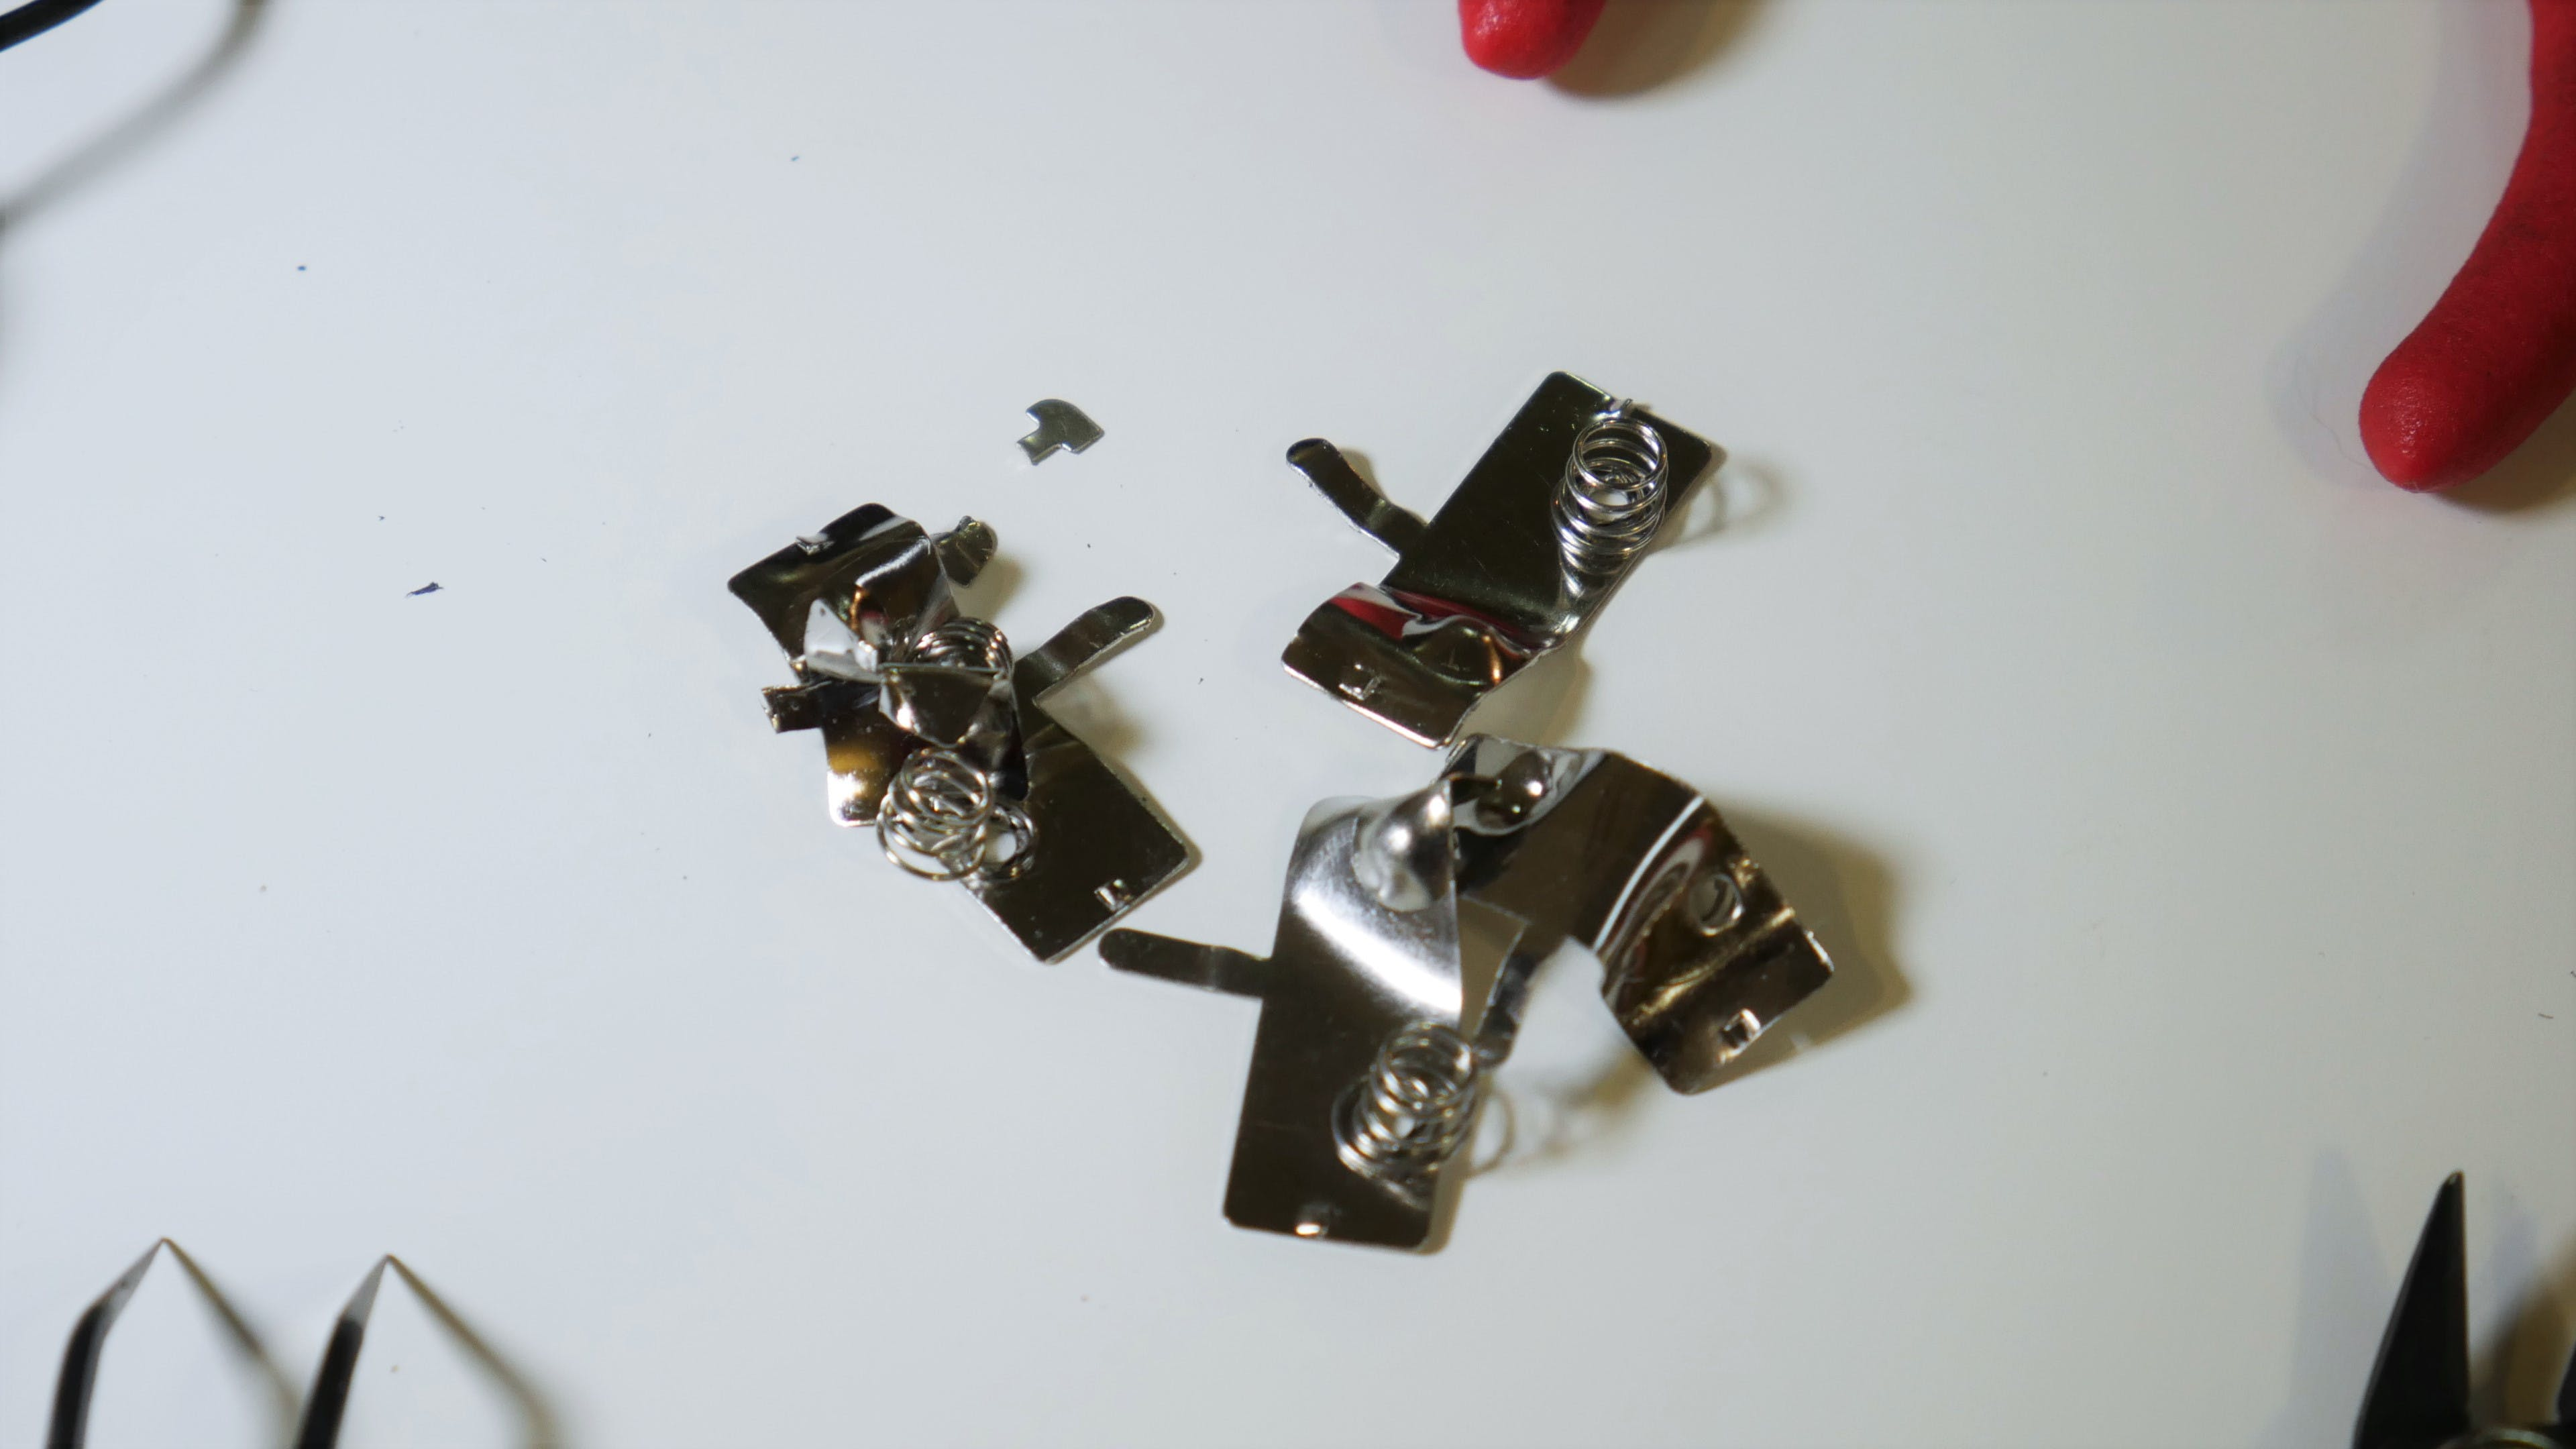 What remains of the AA battery terminals